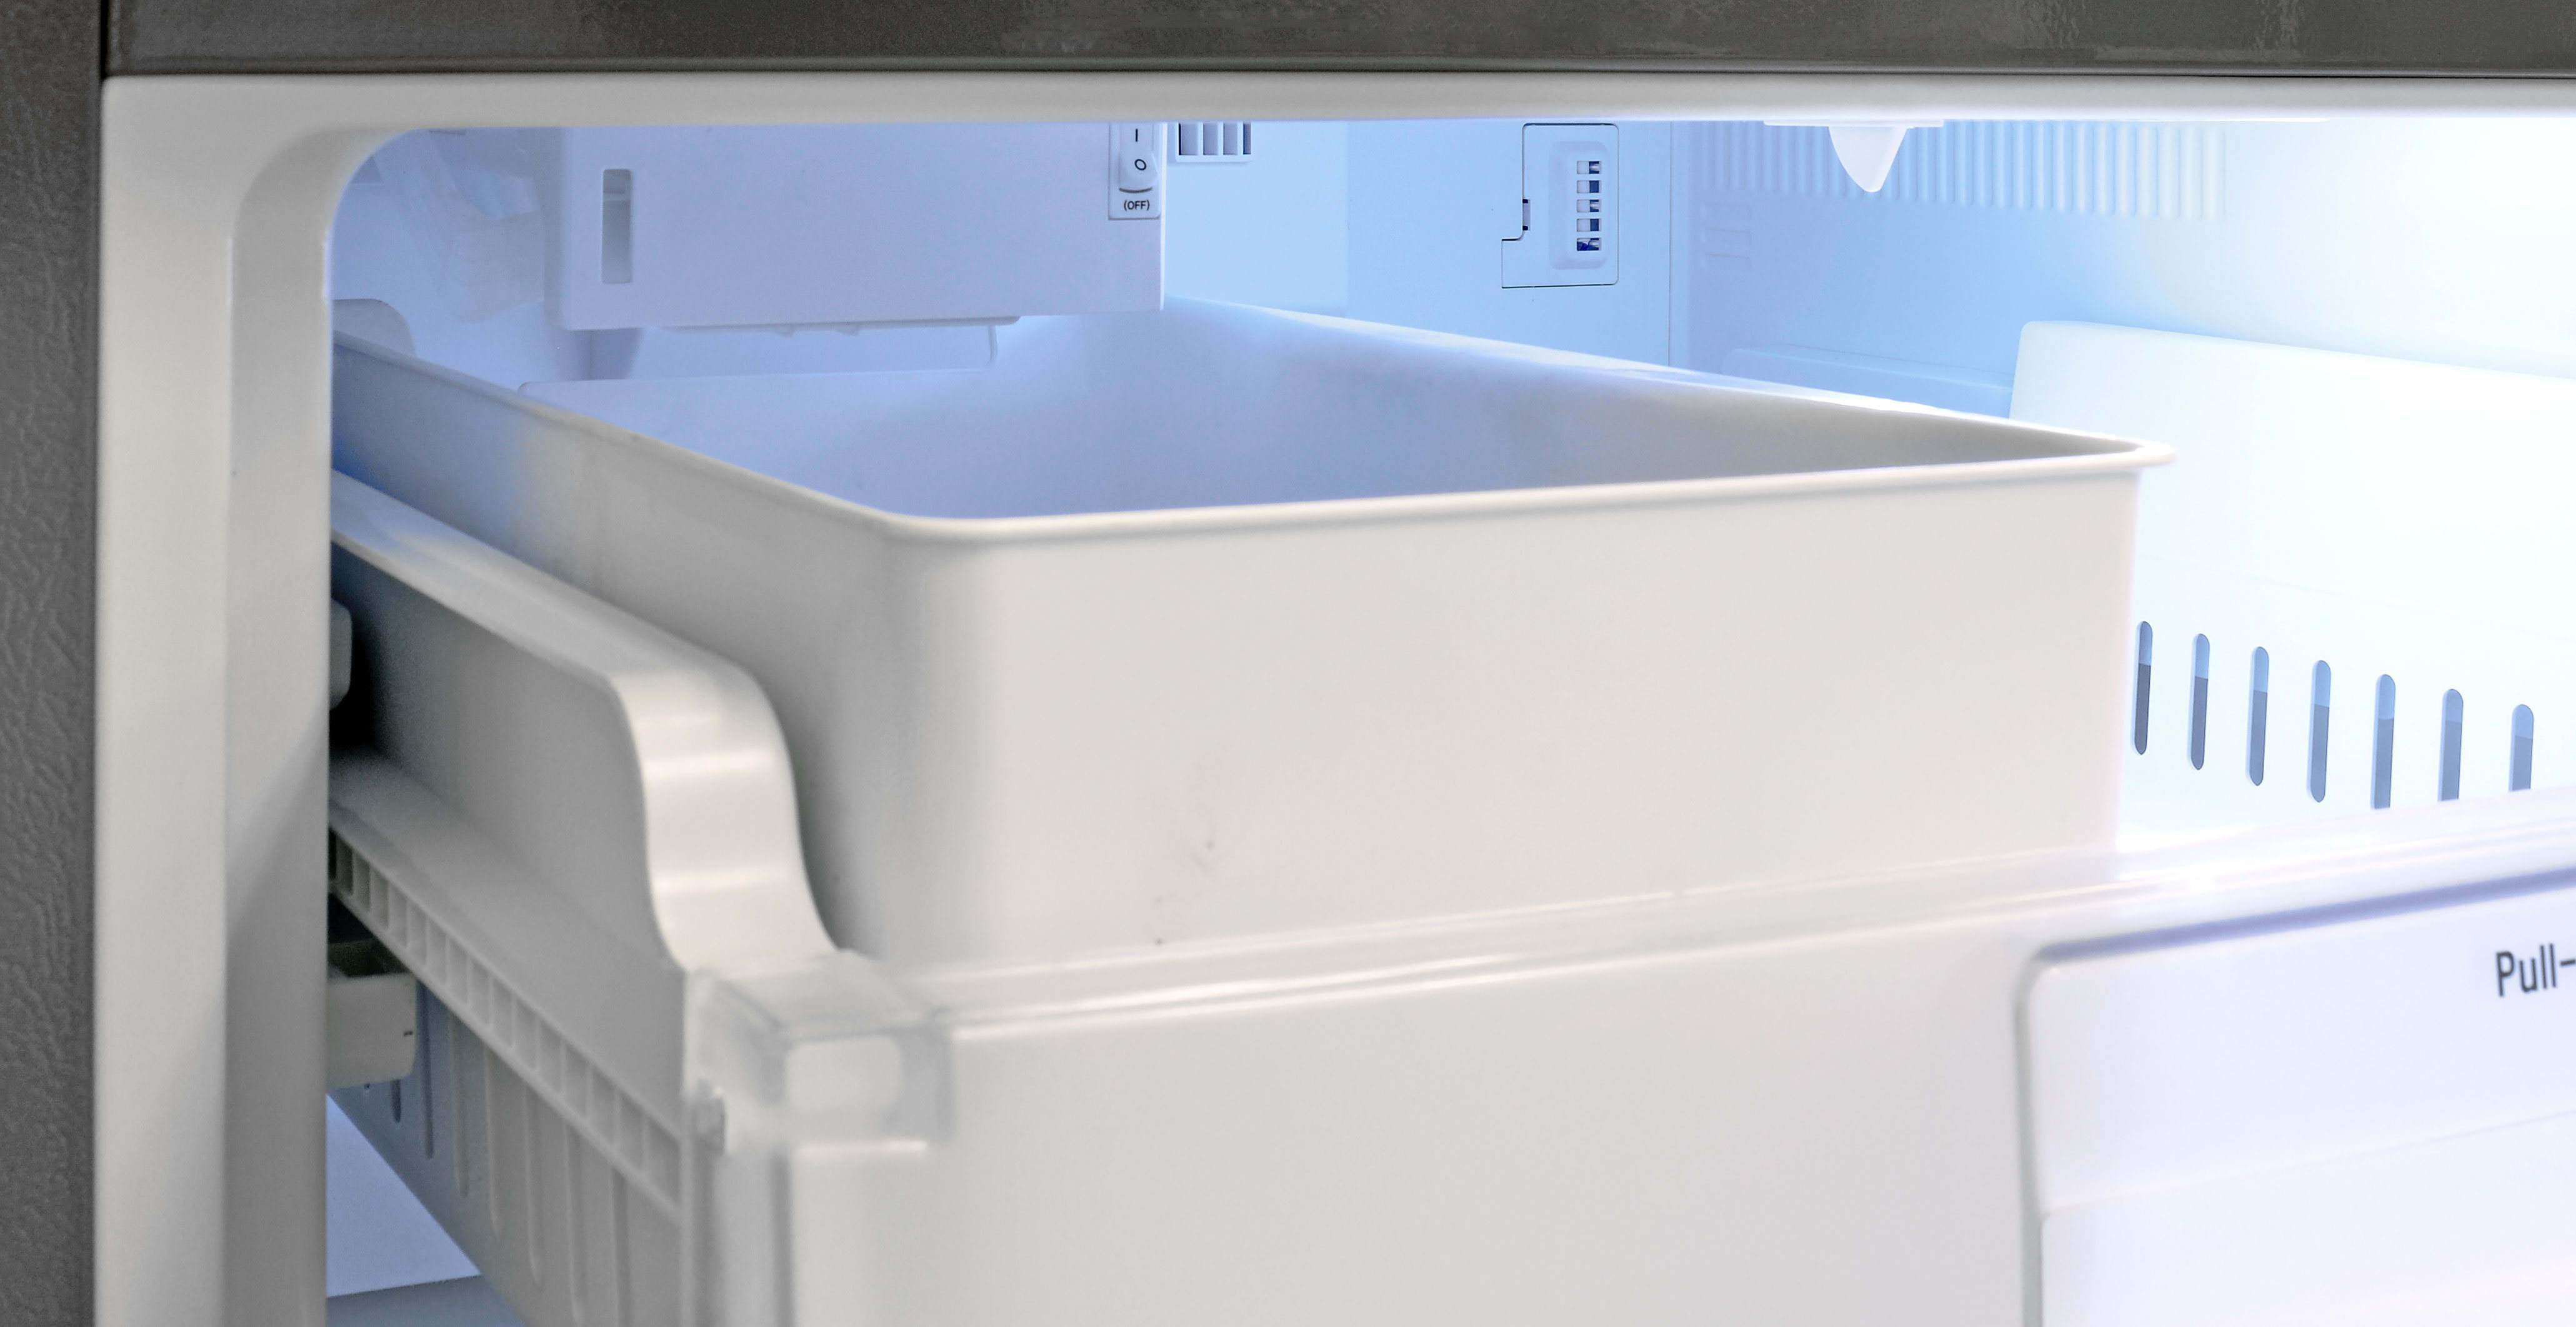 The LG LDC24370ST bottom freezer includes an ice maker but no water dispenser, a set up that's not uncommon for this style of fridge.